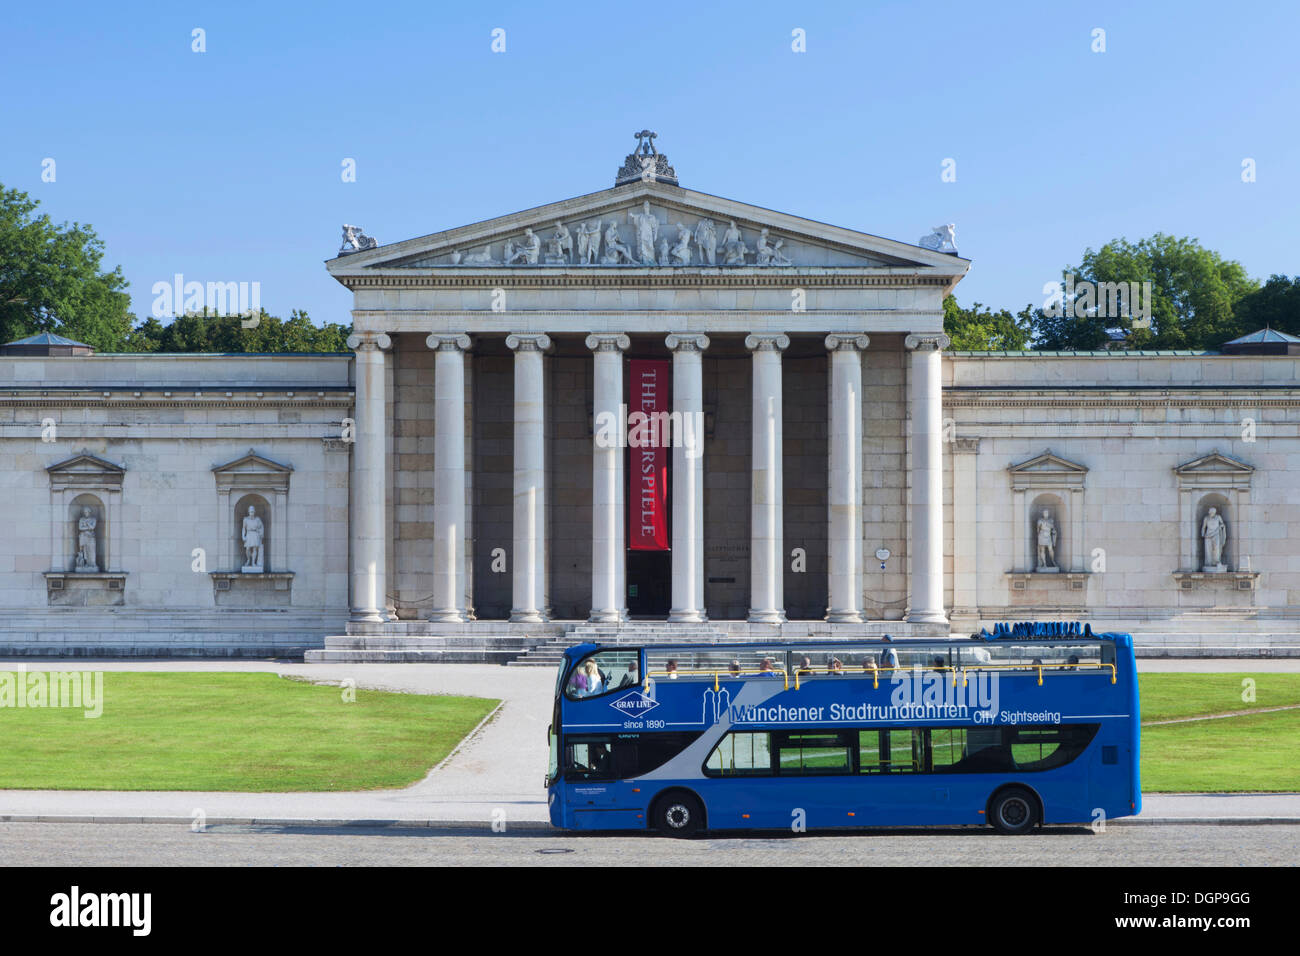 Bus for Munich city tours in front of the Glyptothek Museum, Munich, Upper Bavaria, Bavaria - Stock Image